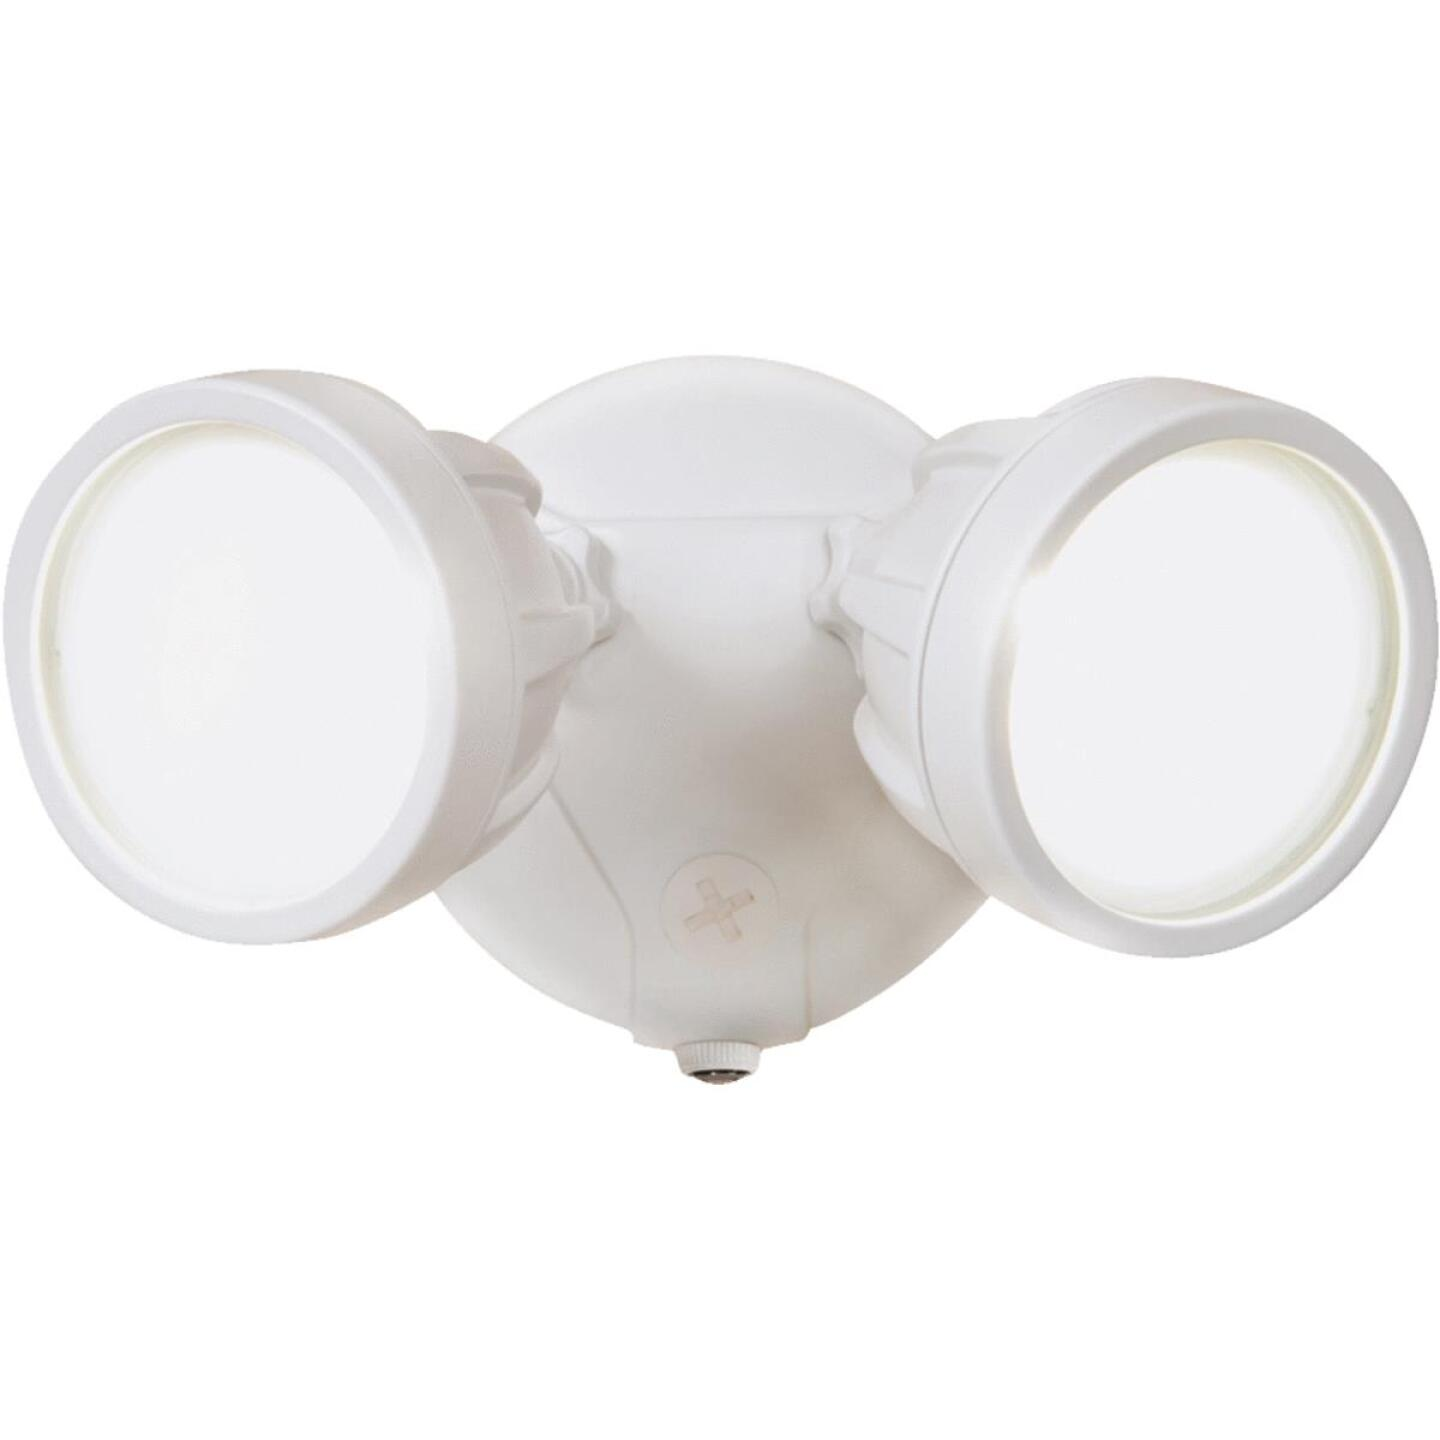 All-Pro White Dusk To Dawn LED Floodlight Fixture Image 1